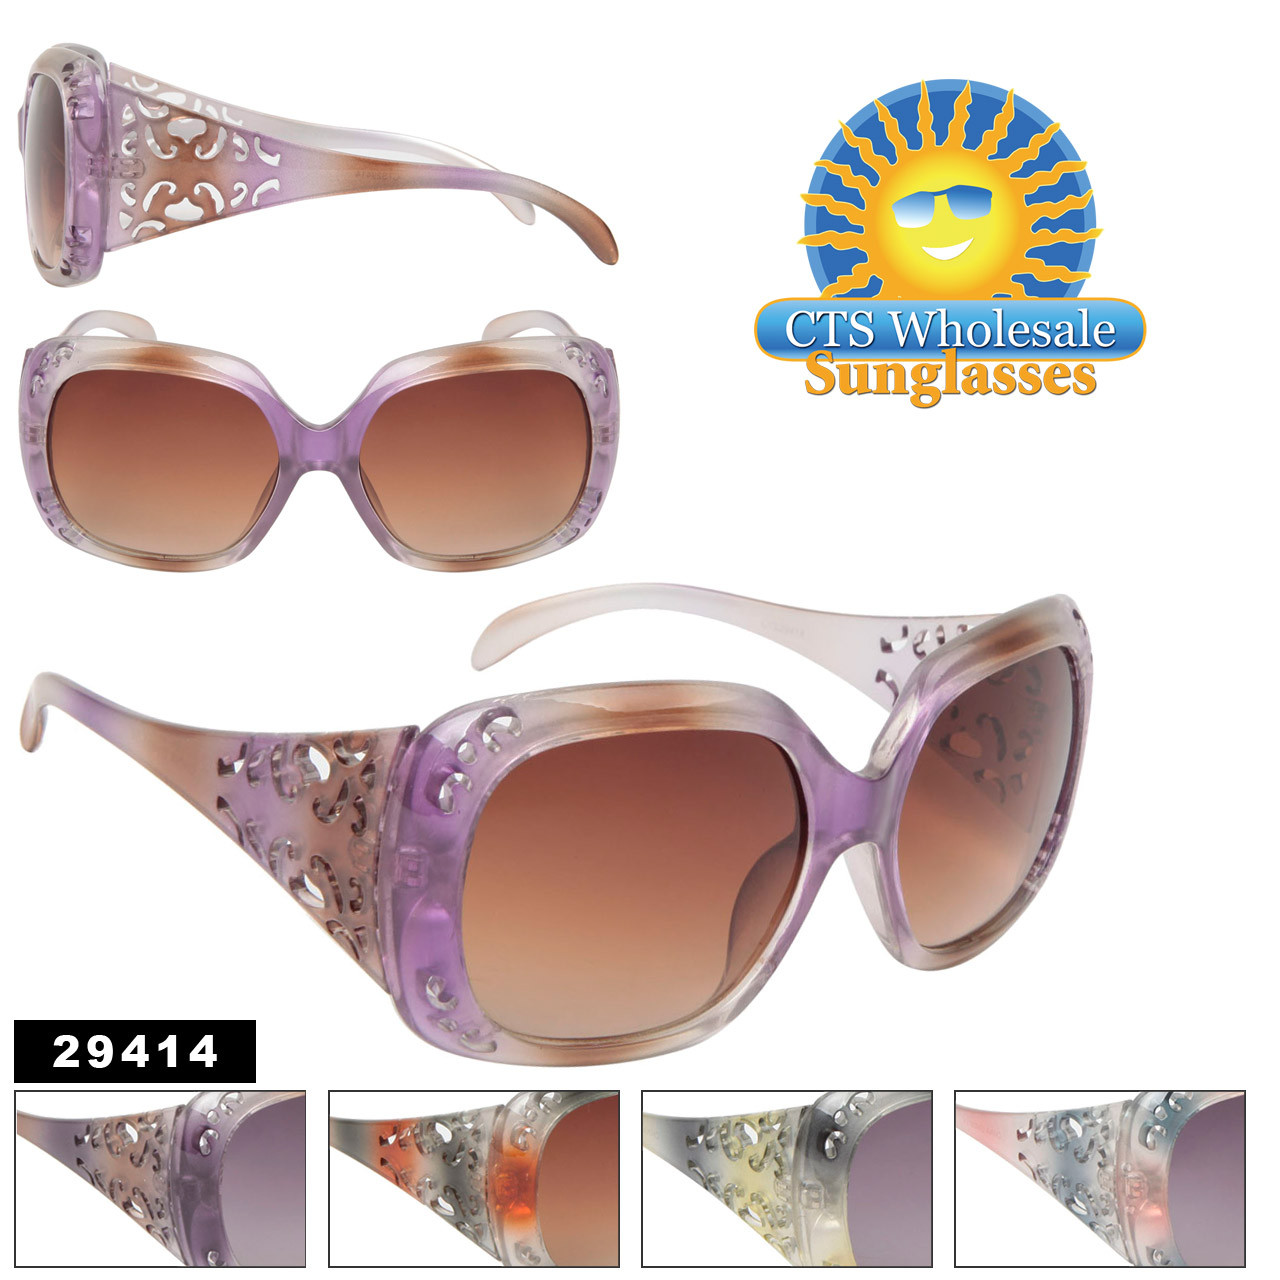 Women's Sunglasses 29414 (Assorted Colors) (12 pcs.)